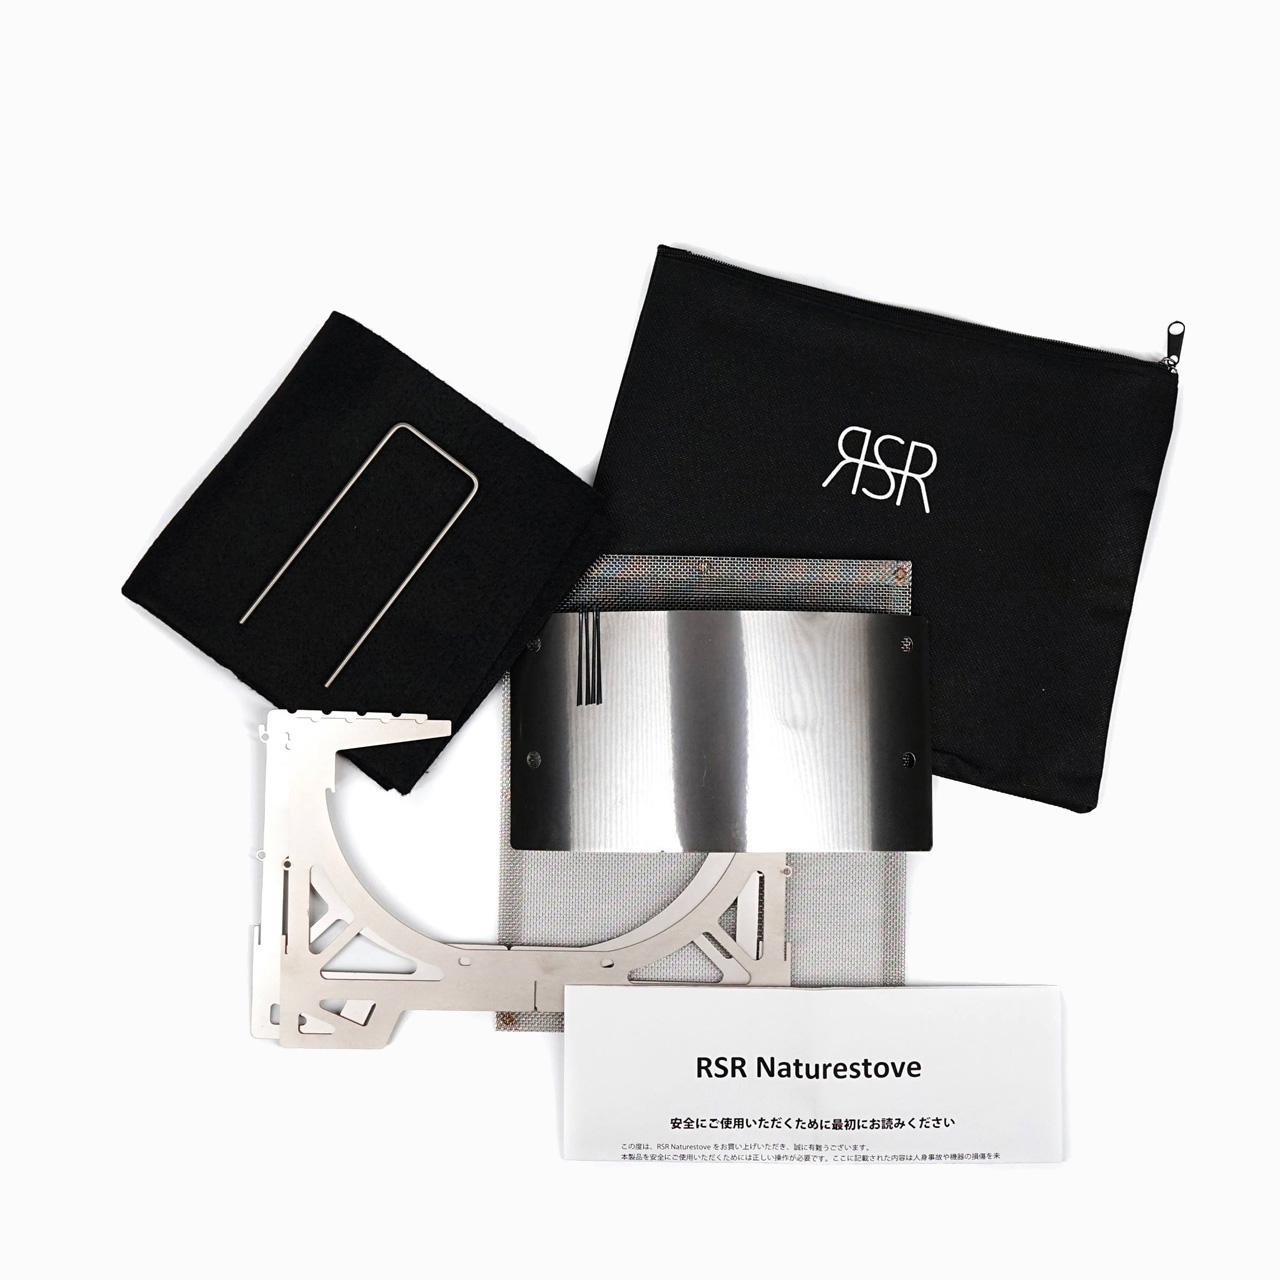 RSR Naturestove